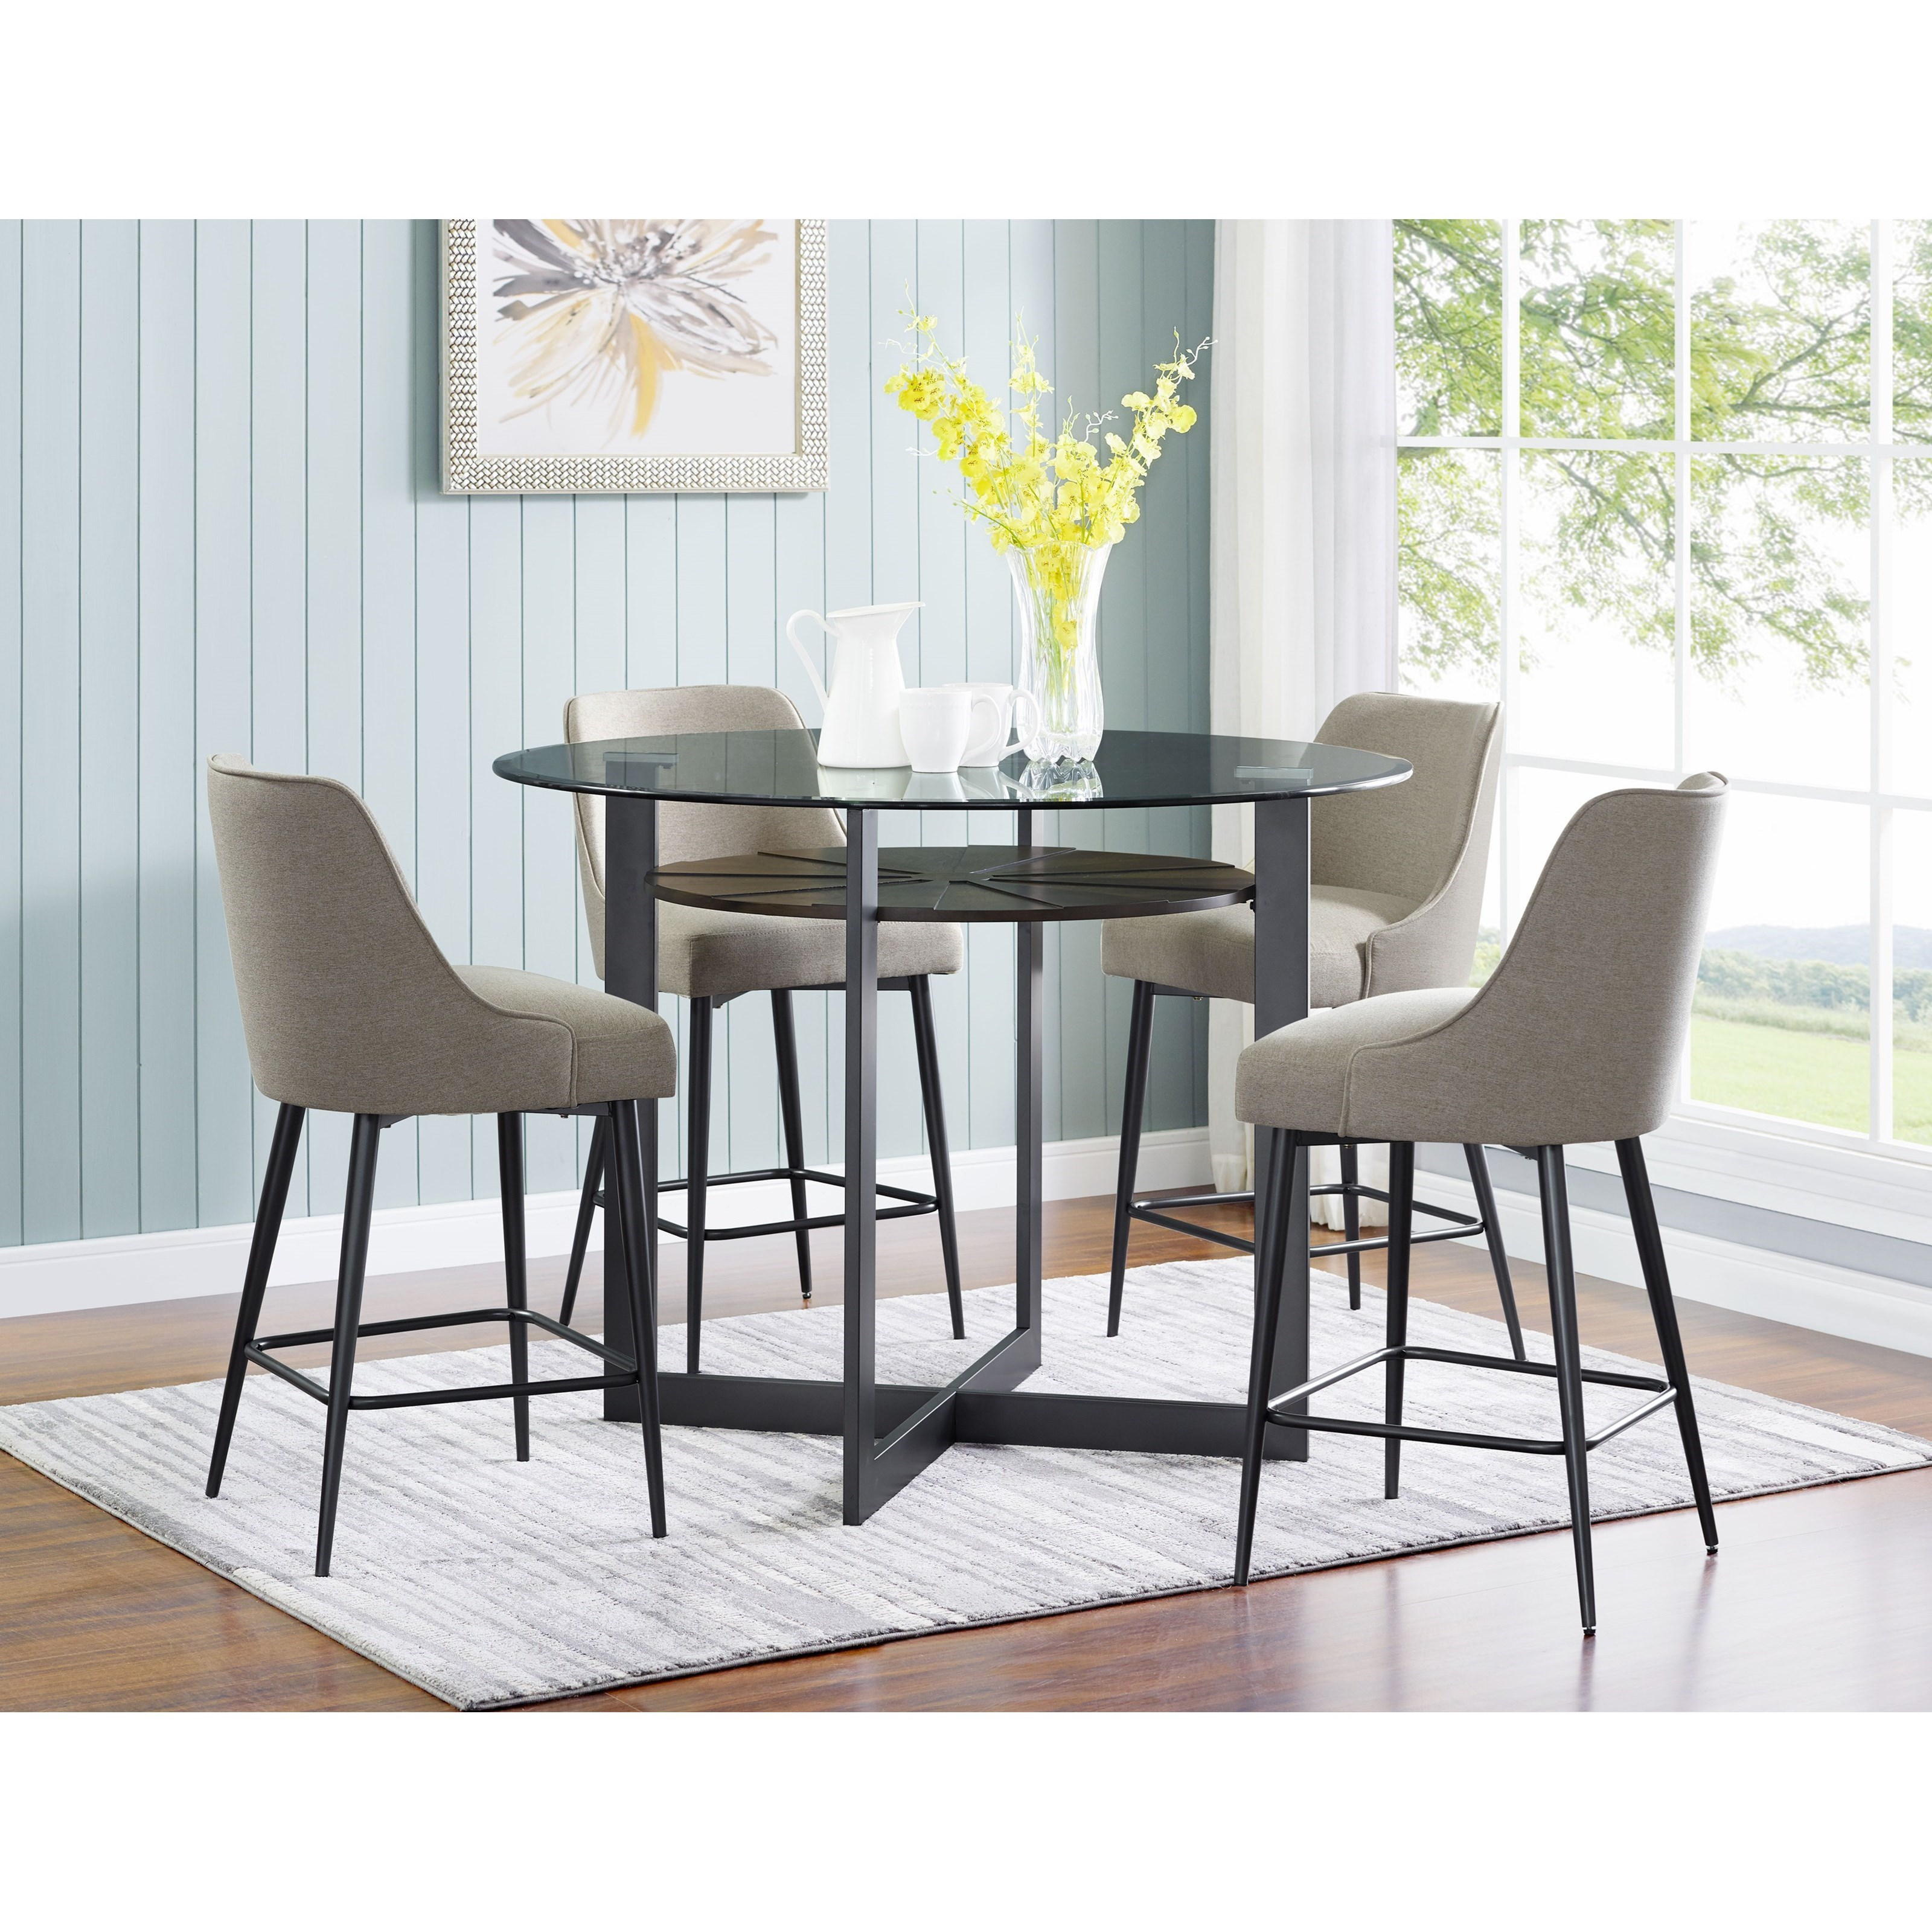 Olson SS 5 Piece Counter Dining Set by Steve Silver at Darvin Furniture